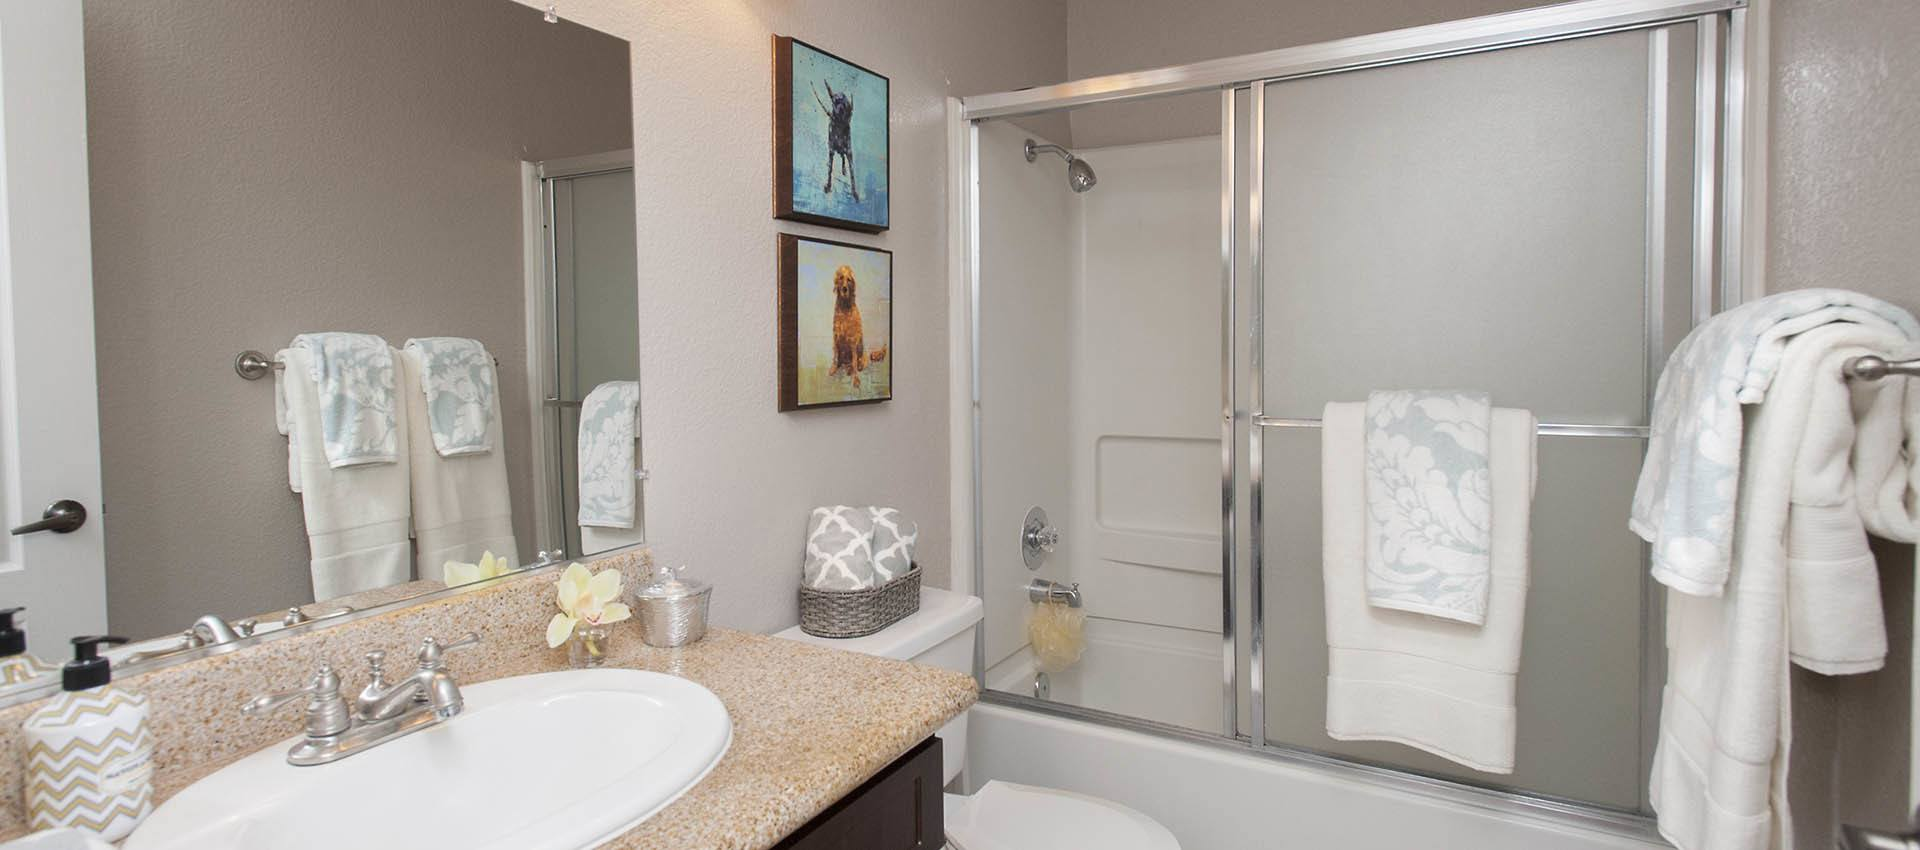 Spacious Bathroom at Deer Valley Apartment Homes in Roseville, California